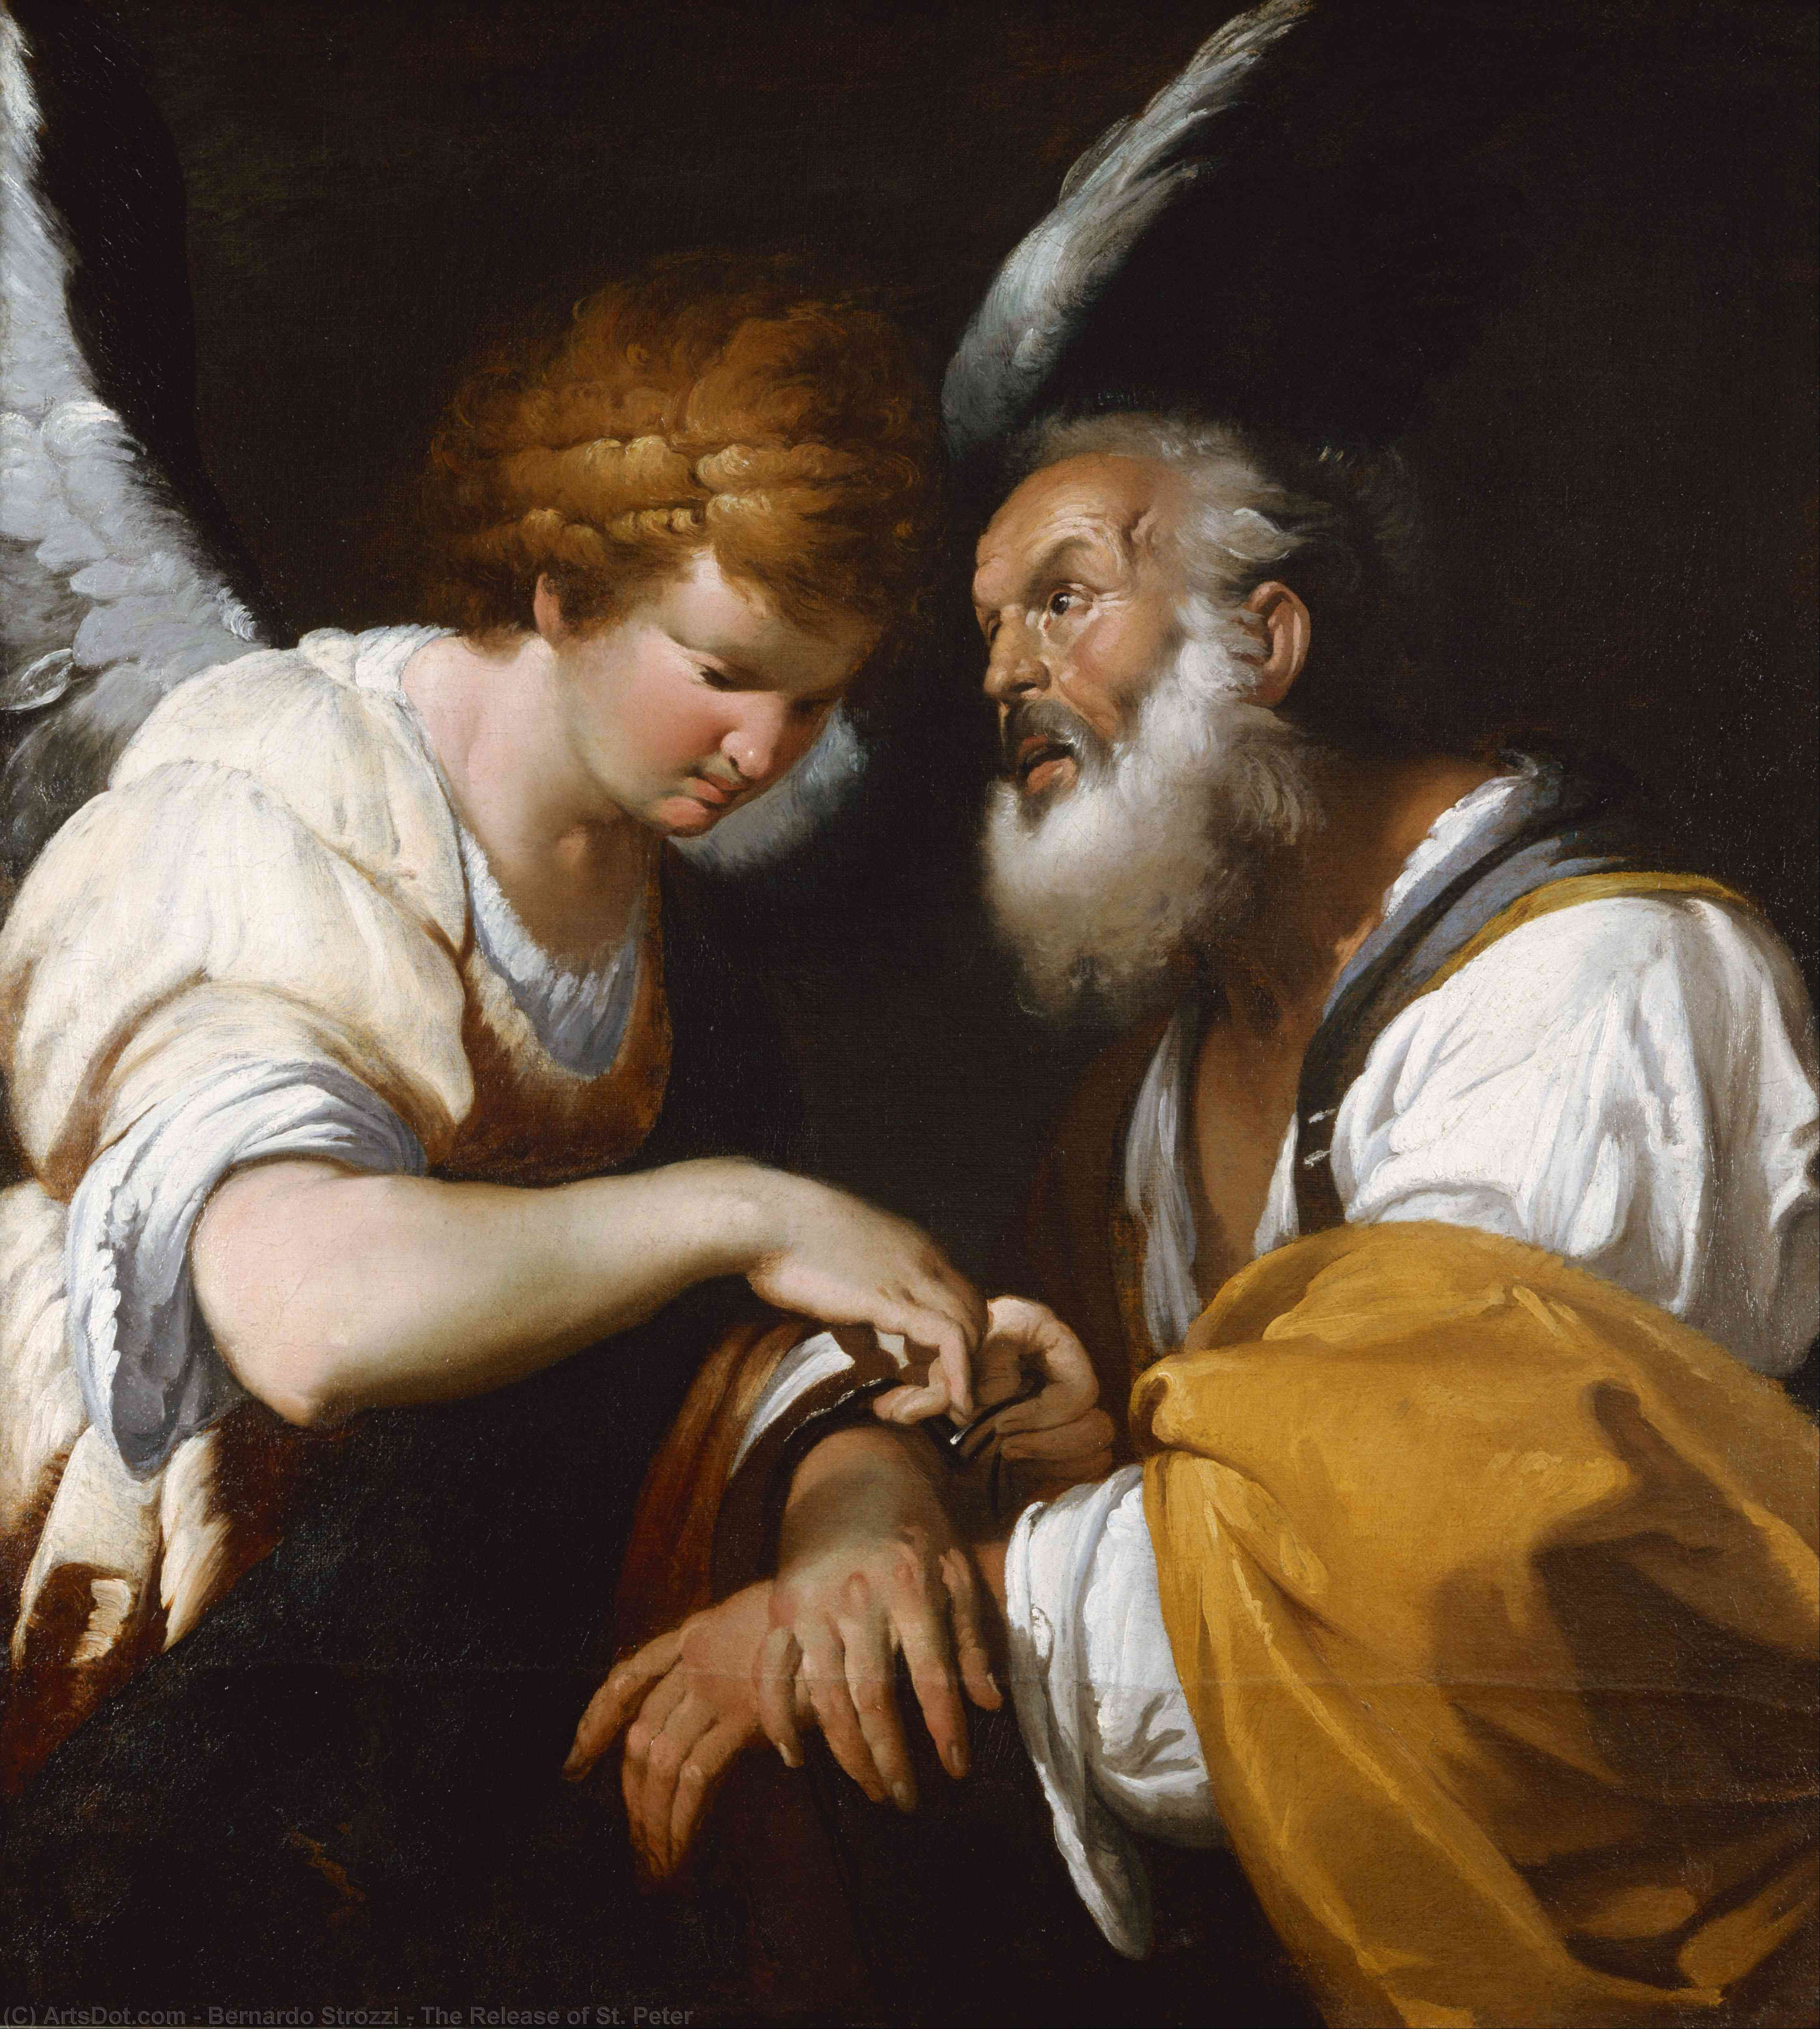 Wikioo.org - The Encyclopedia of Fine Arts - Painting, Artwork by Bernardo Strozzi - The Release of St. Peter